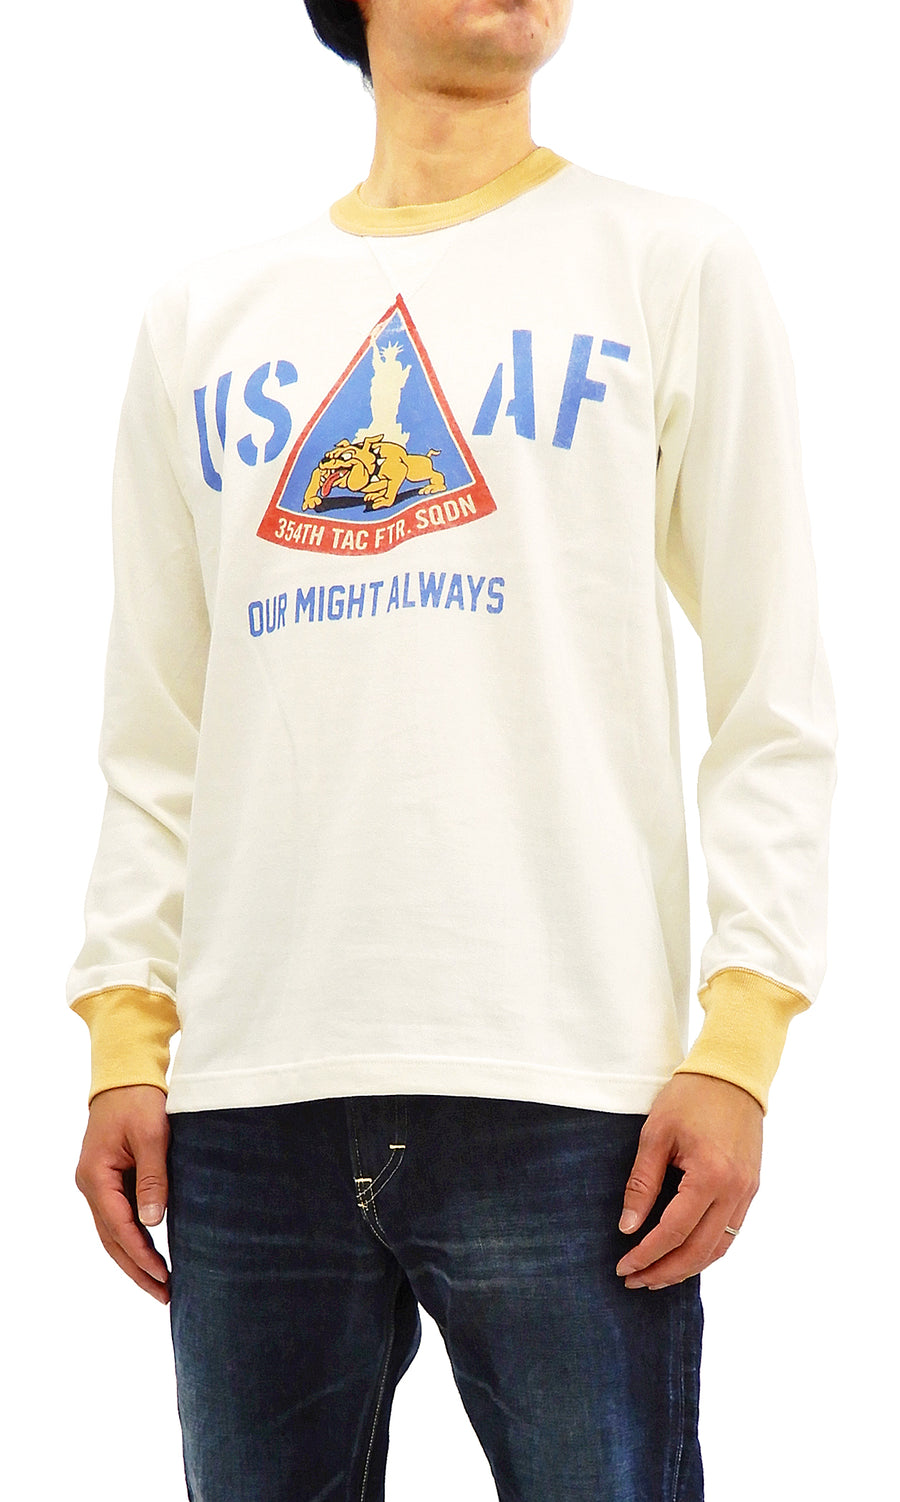 TOYS McCOY Men's Long Sleeve T-shirt US Air Force Military Tee TMC1853 Off-White